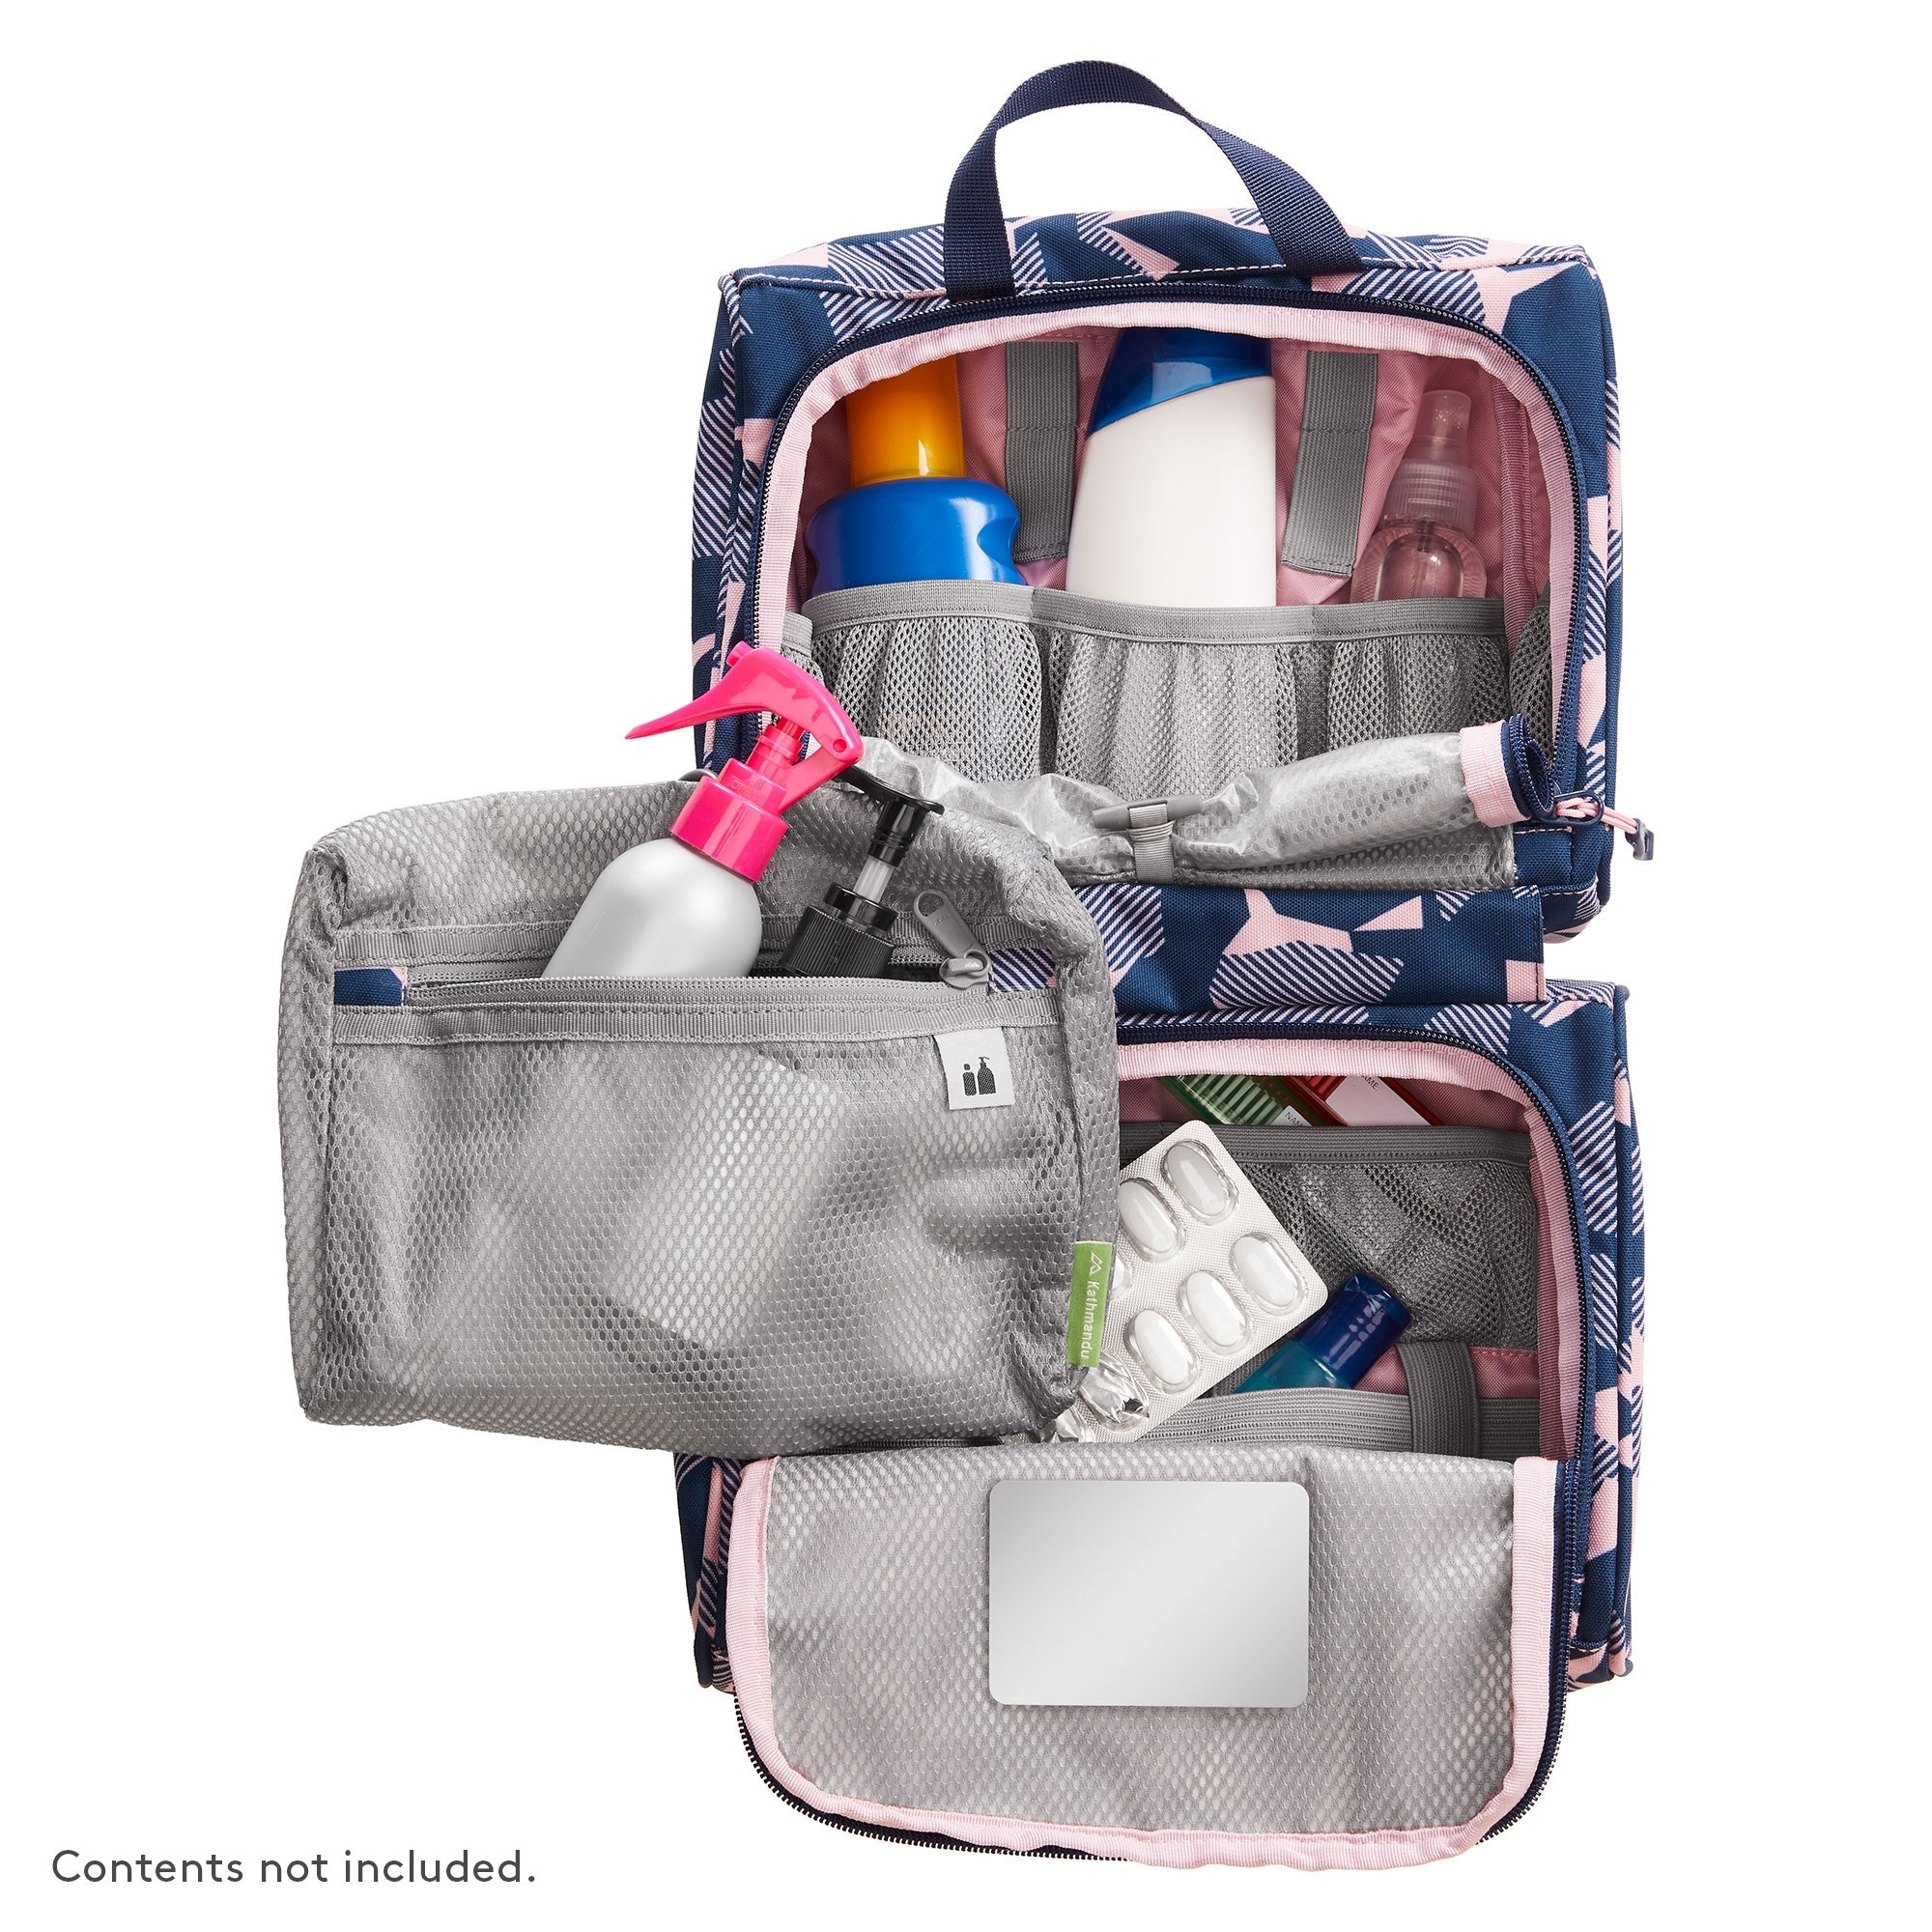 Hanging Travel Toiletry Bag Nz Home Decorating Ideas